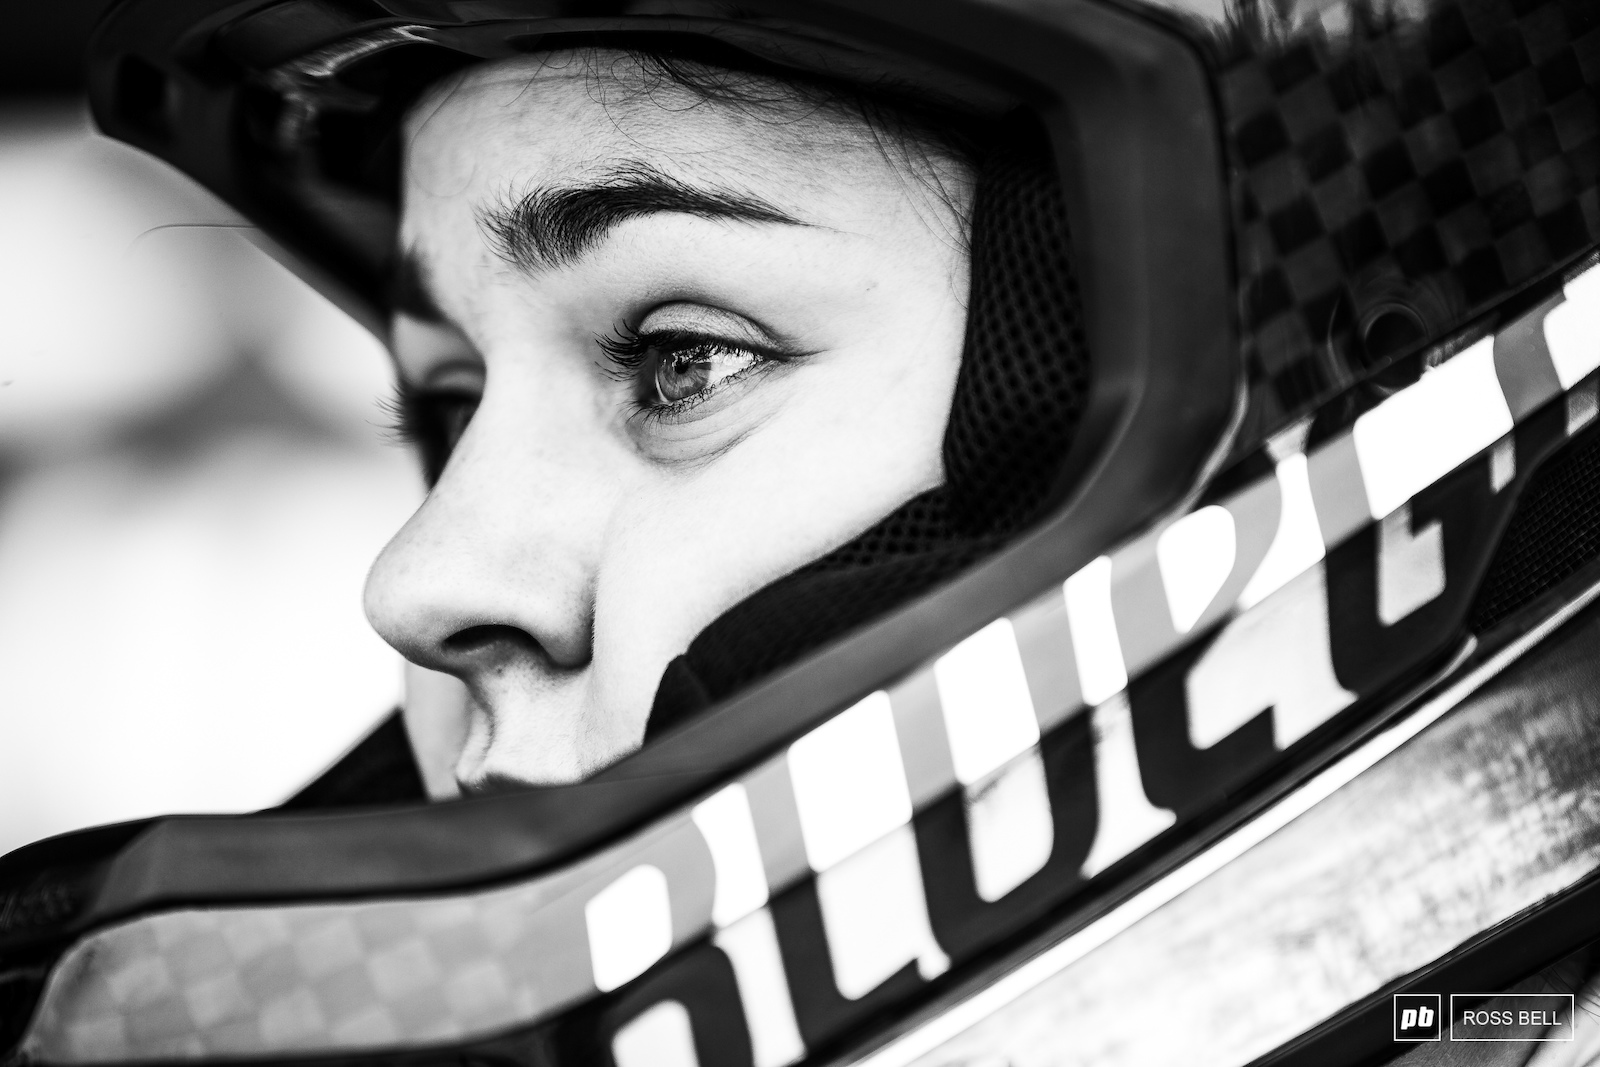 The thousand yard stare from Marine Cabirou as she awaits her turn in the start gate.